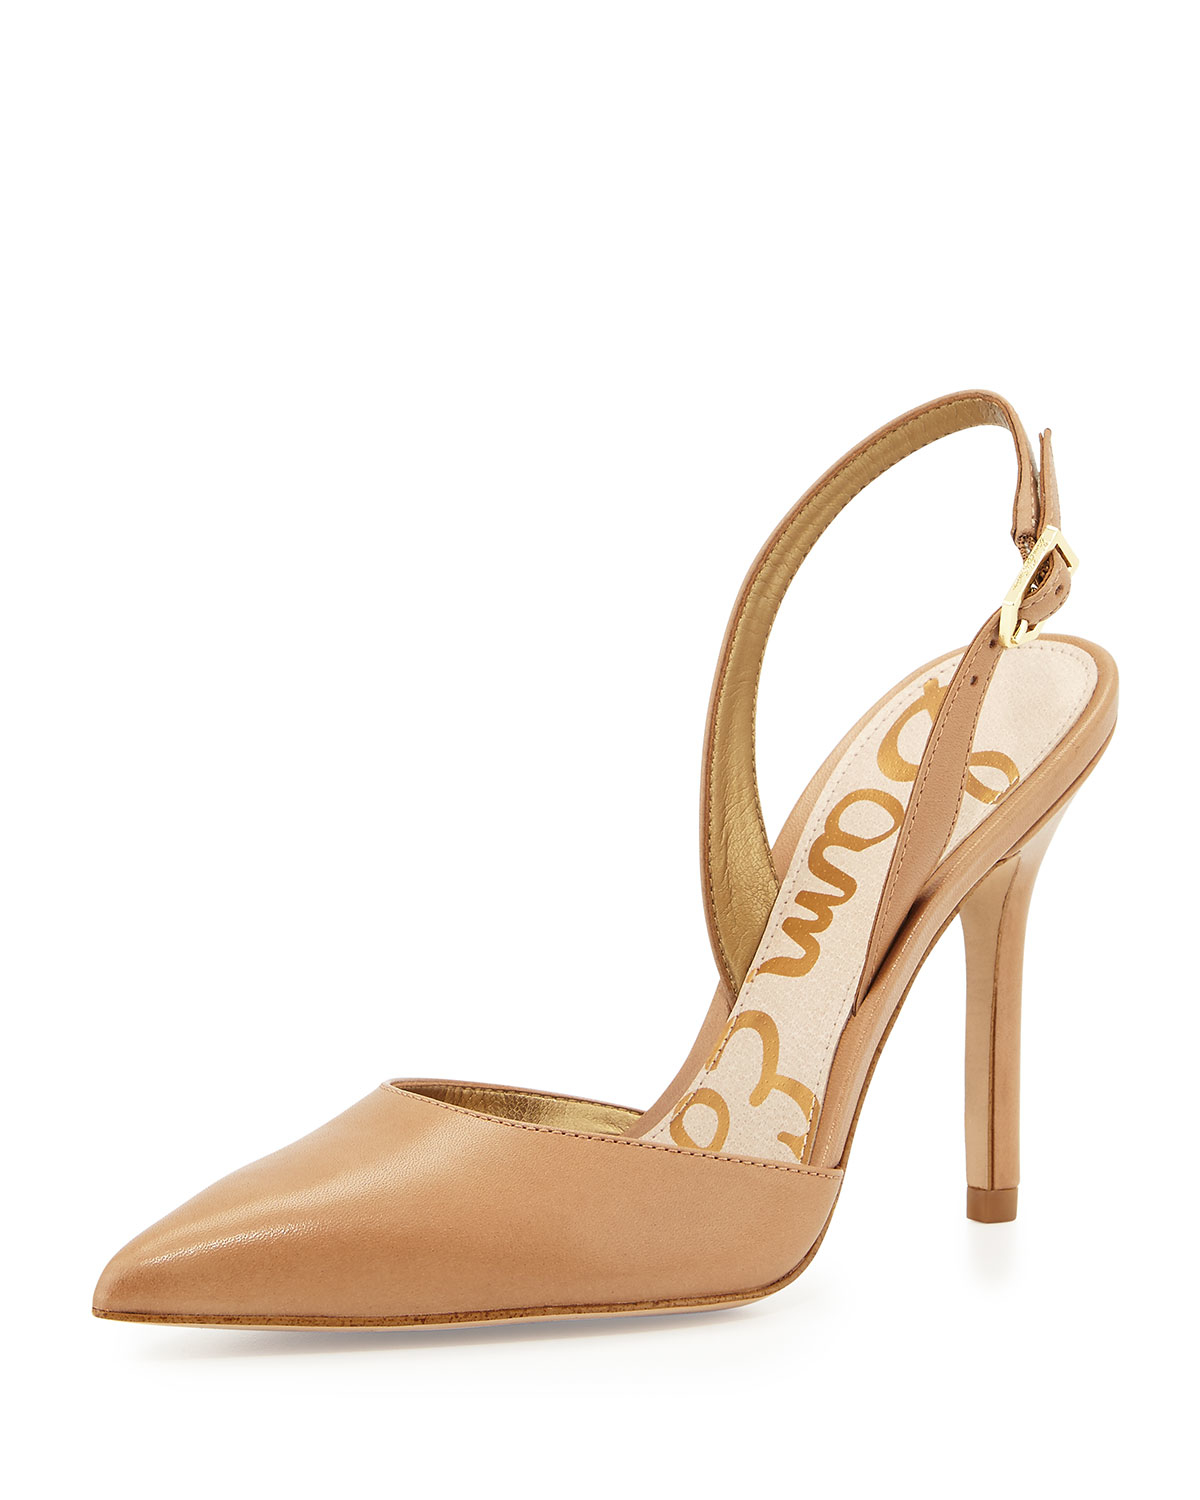 3522d7a3a Sam Edelman Dora Leather Slingback Pumps in Natural - Lyst